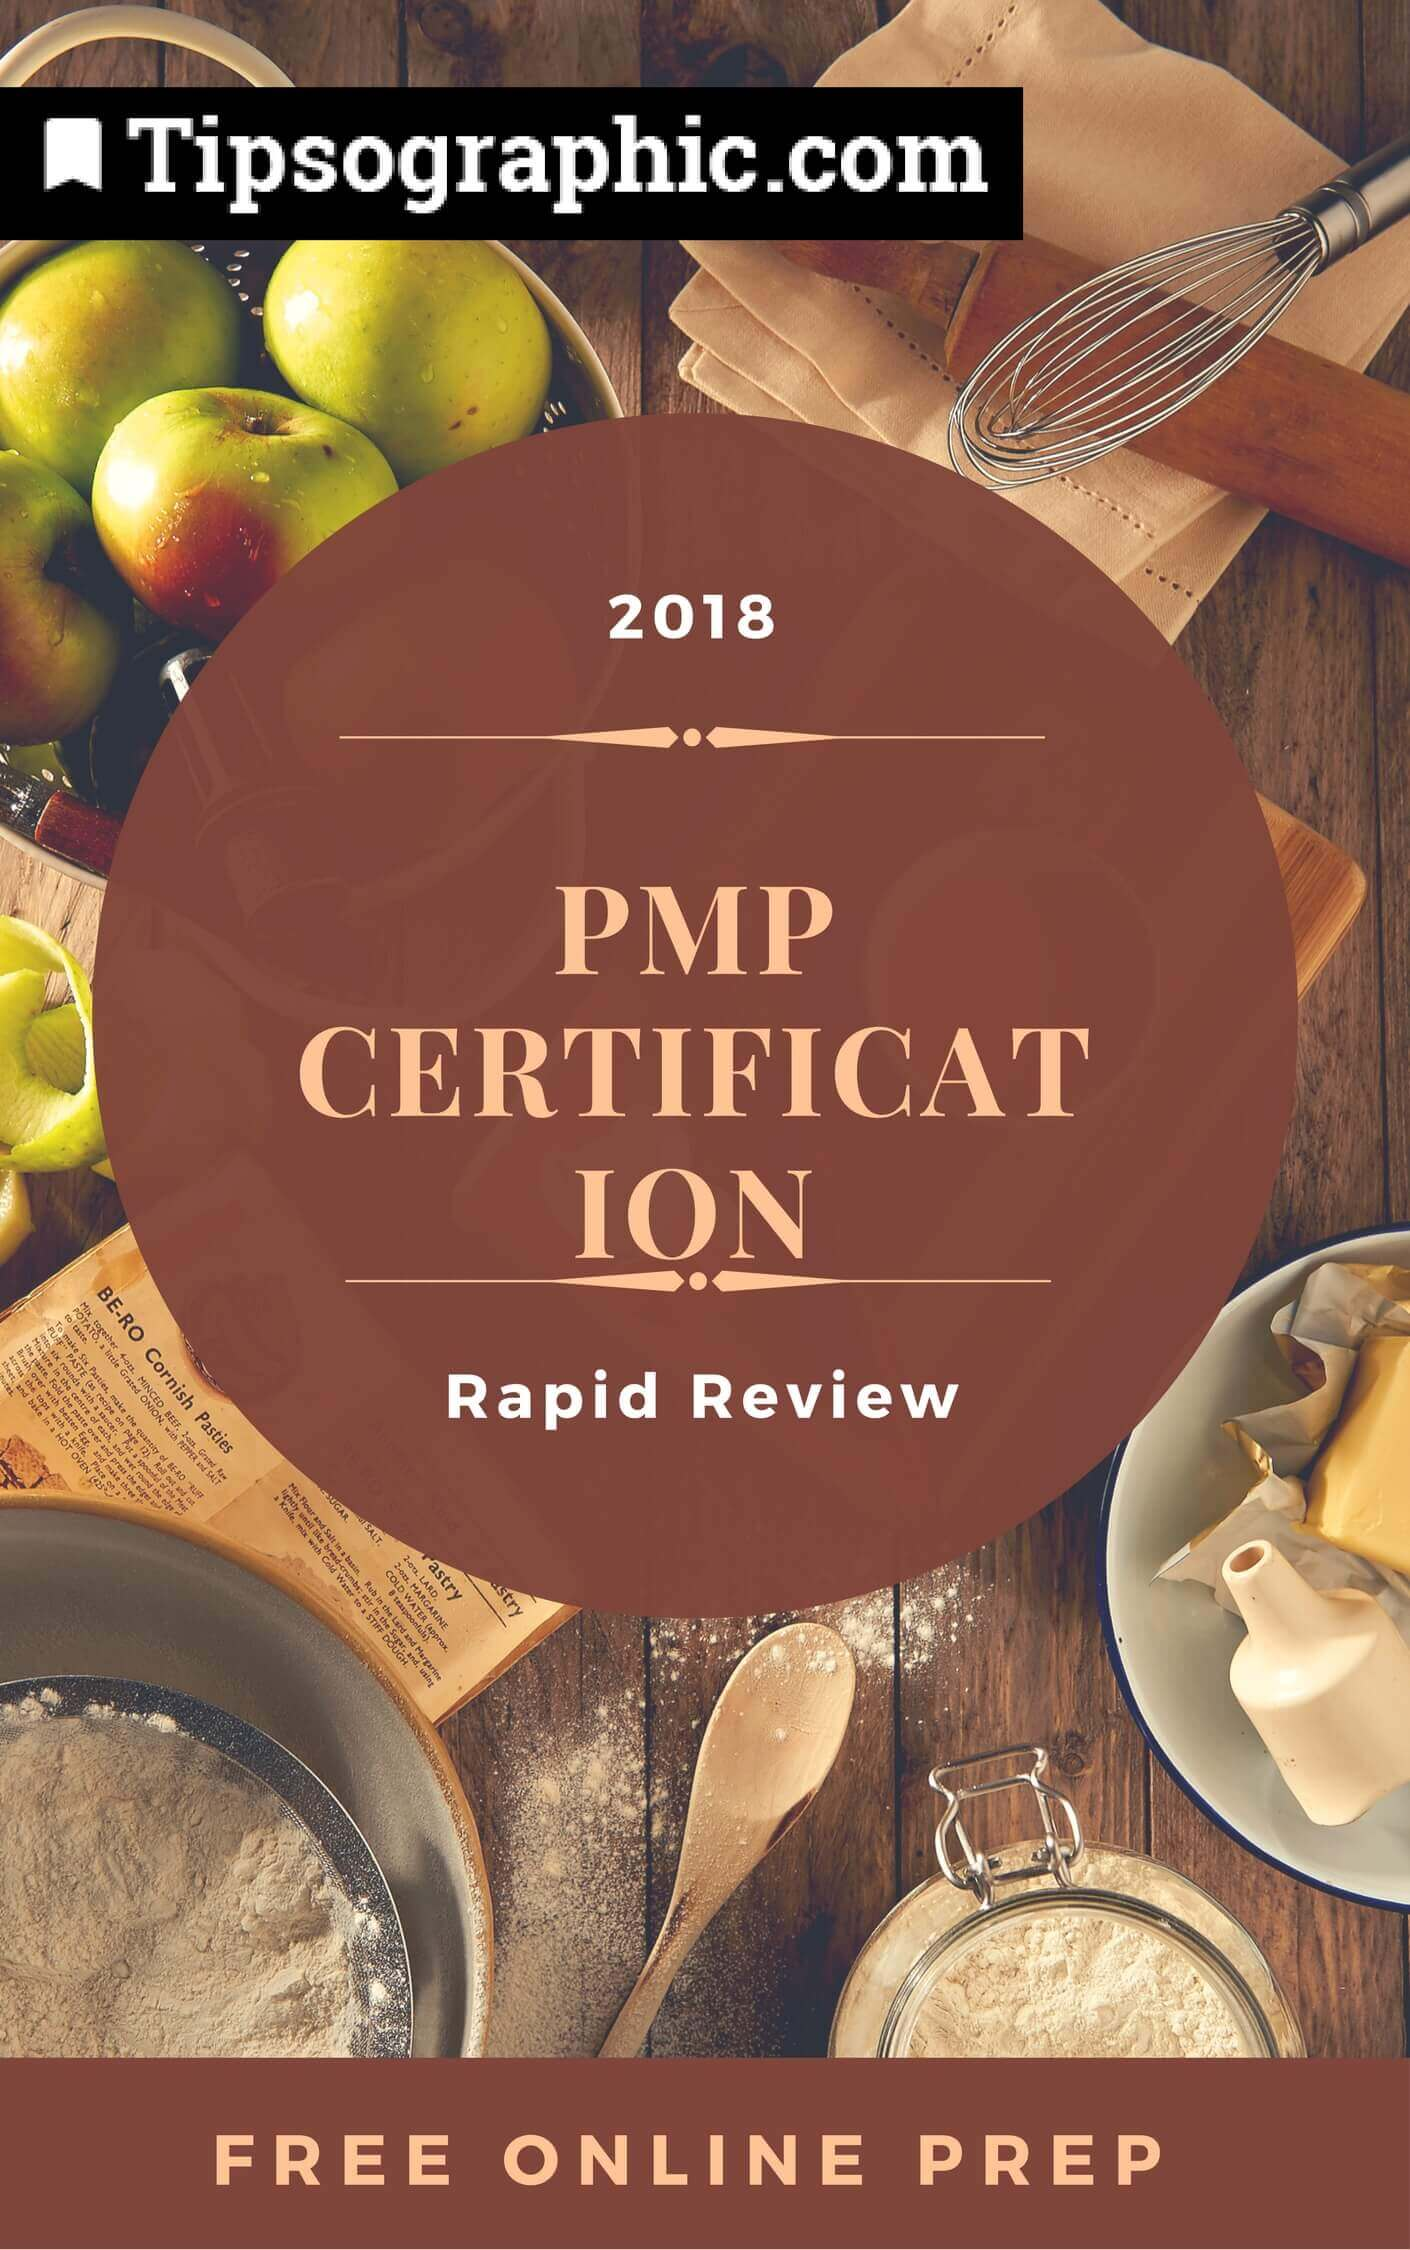 pmp certification 2018 rapid review free online prep tipsographic main